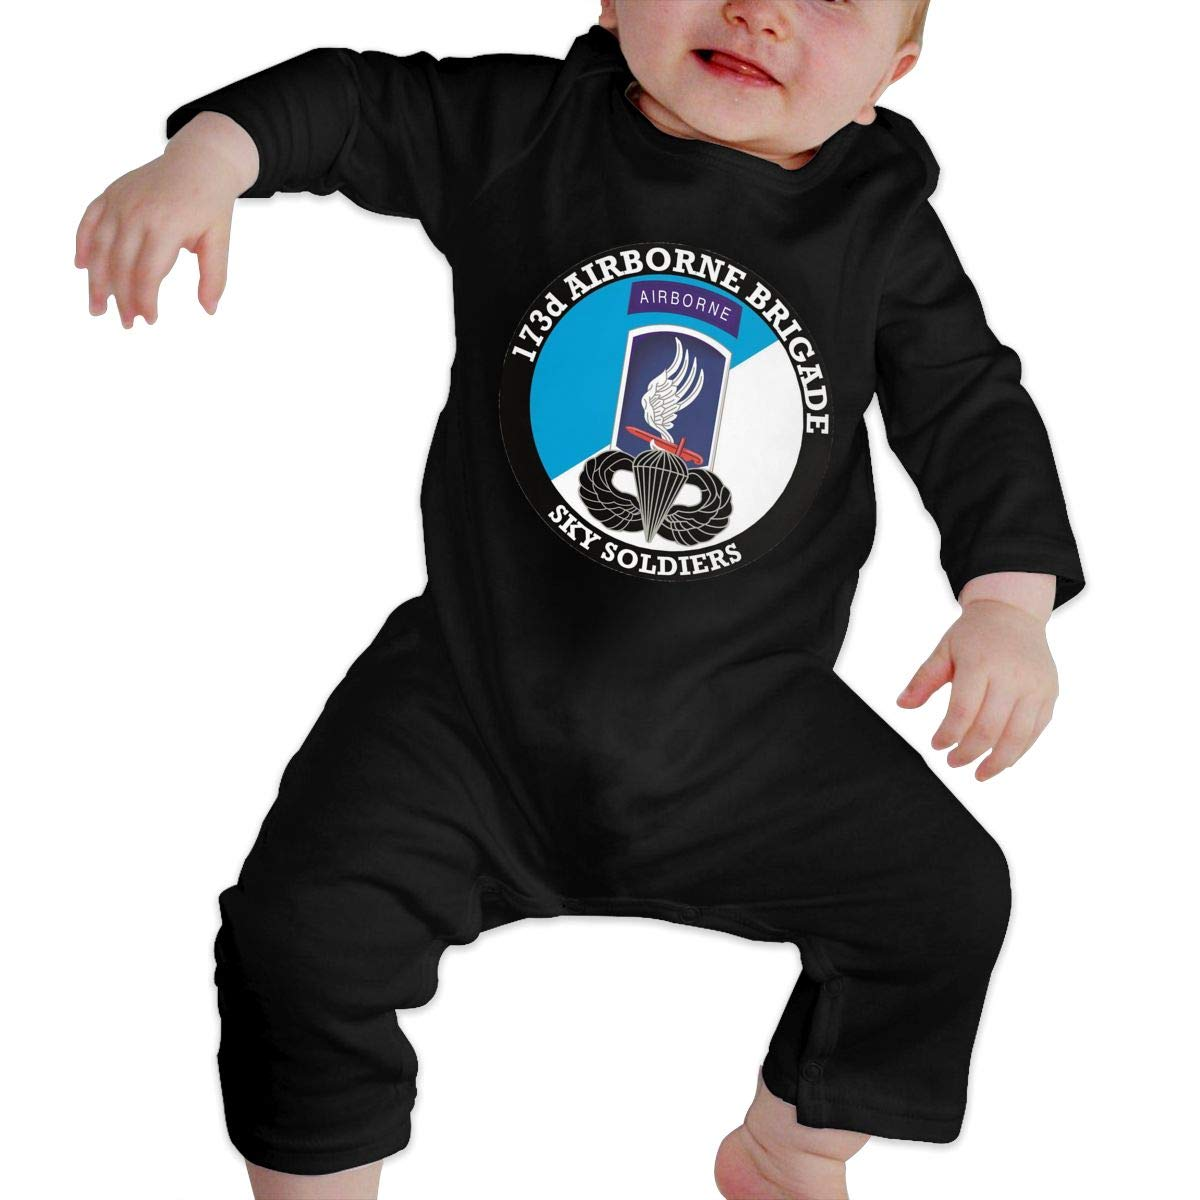 173rd Airborne Brigade with Jump Wings Newborn Baby Long Sleeve Bodysuits Rompers Outfits